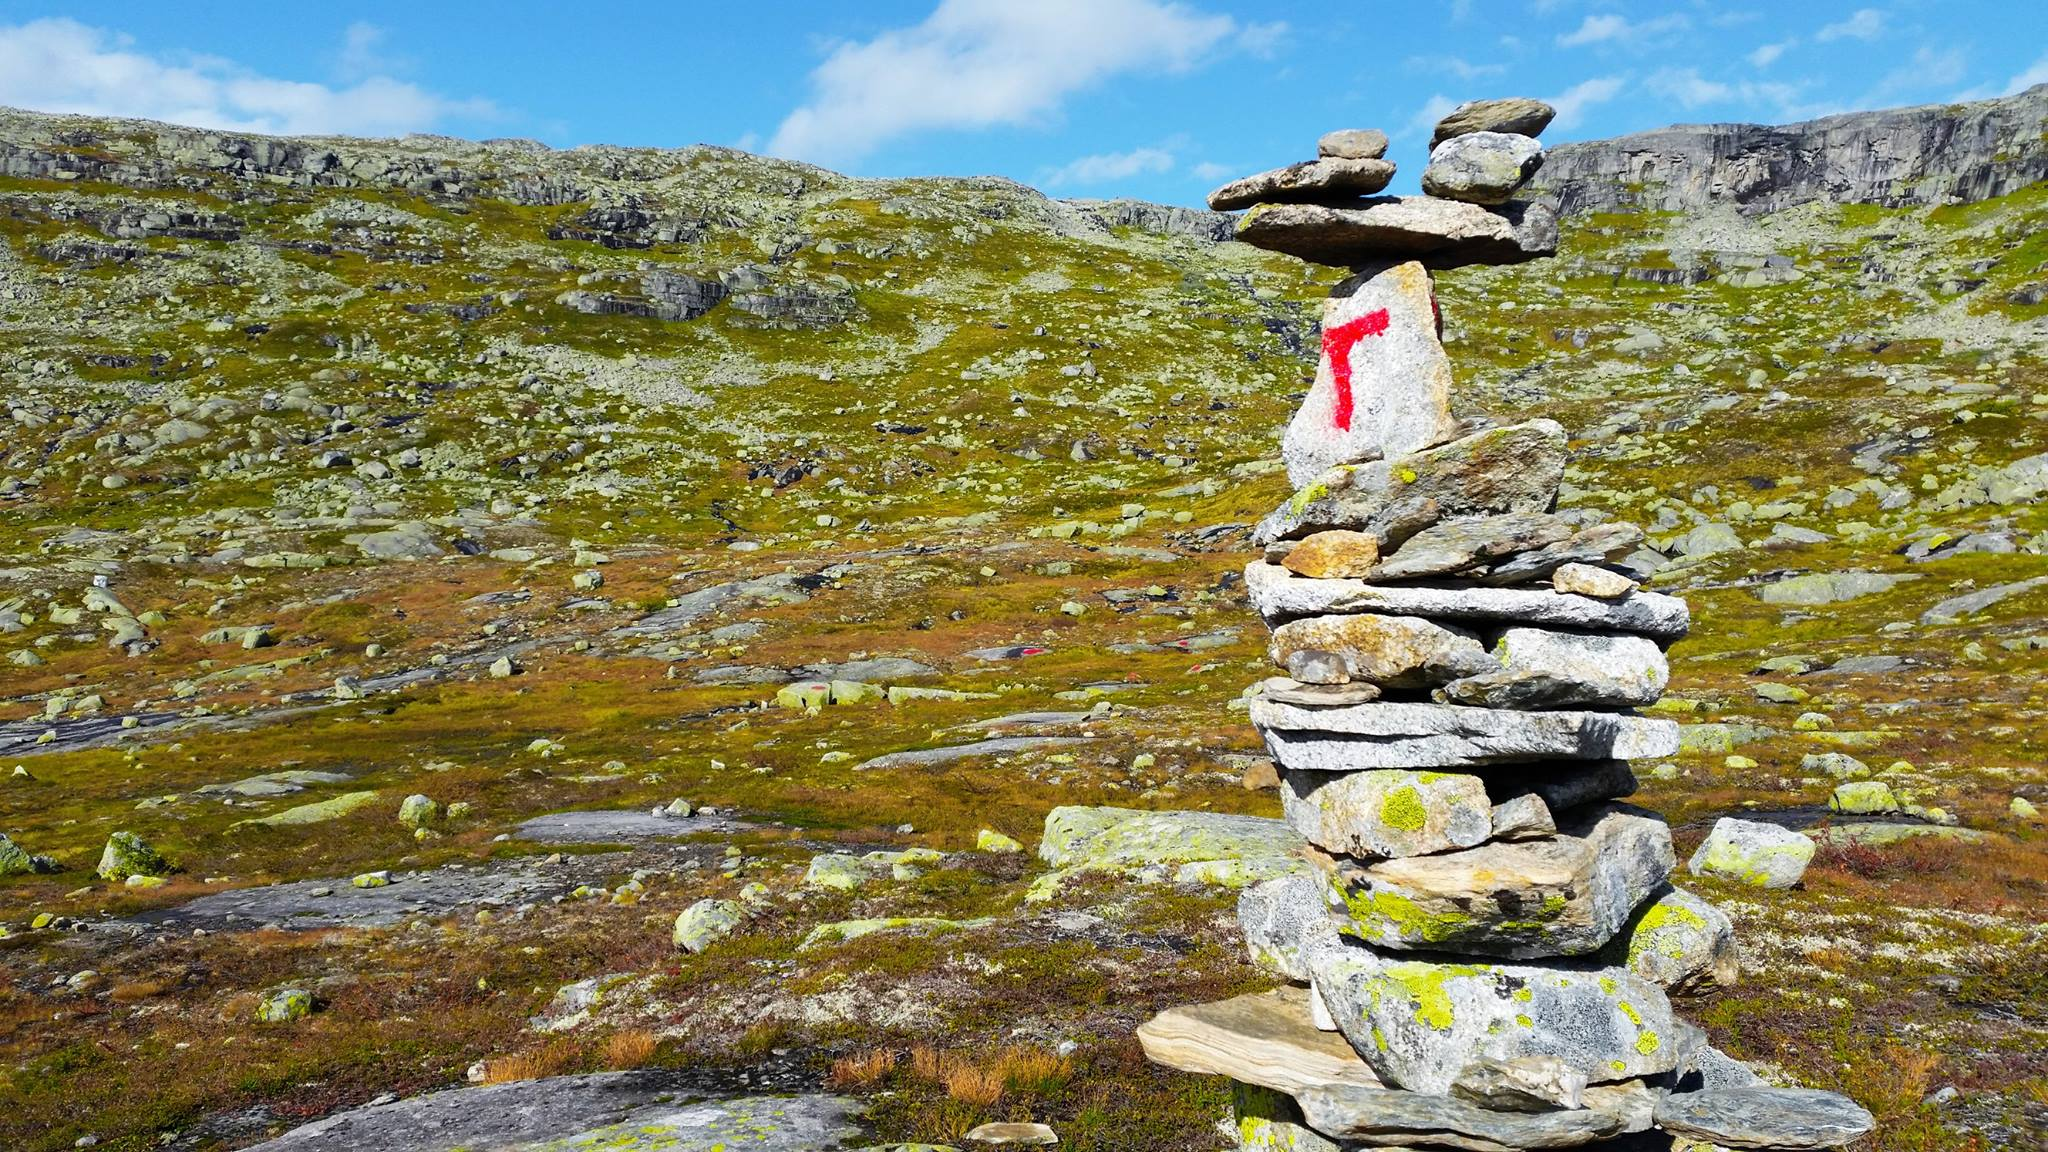 Solo Travel Blog | Backpacking with Bacon | Trolltunga Rocks